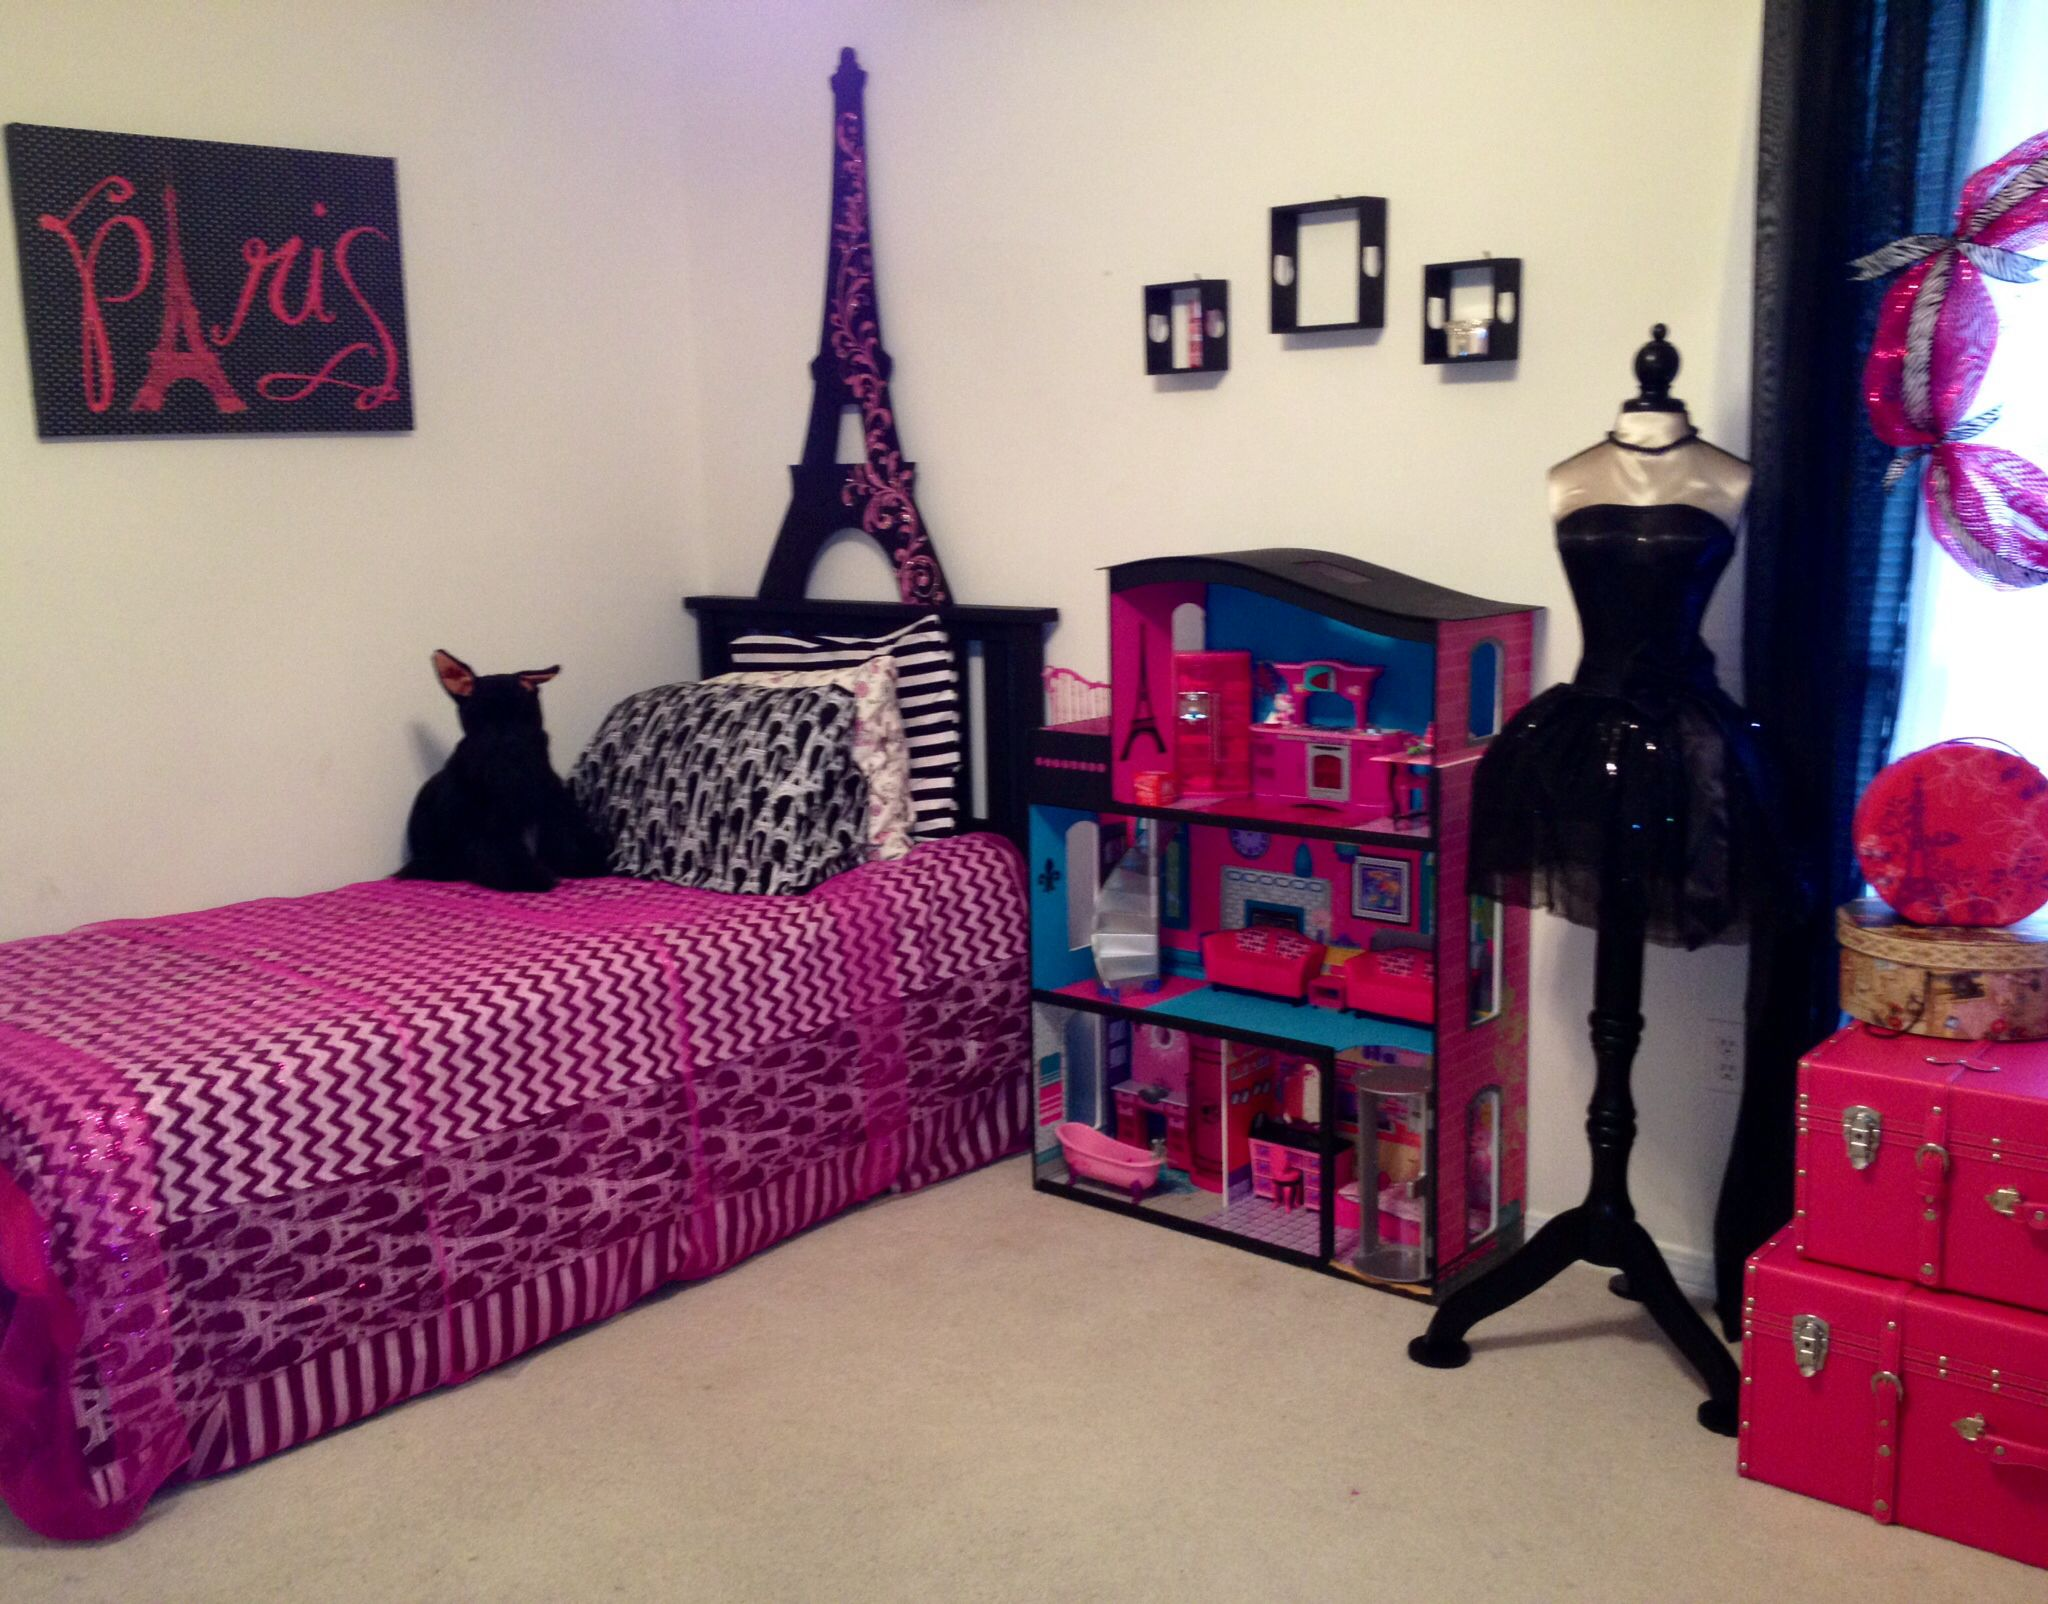 Attirant Little Girls Bedroom To 13 Year Olds Dream Room